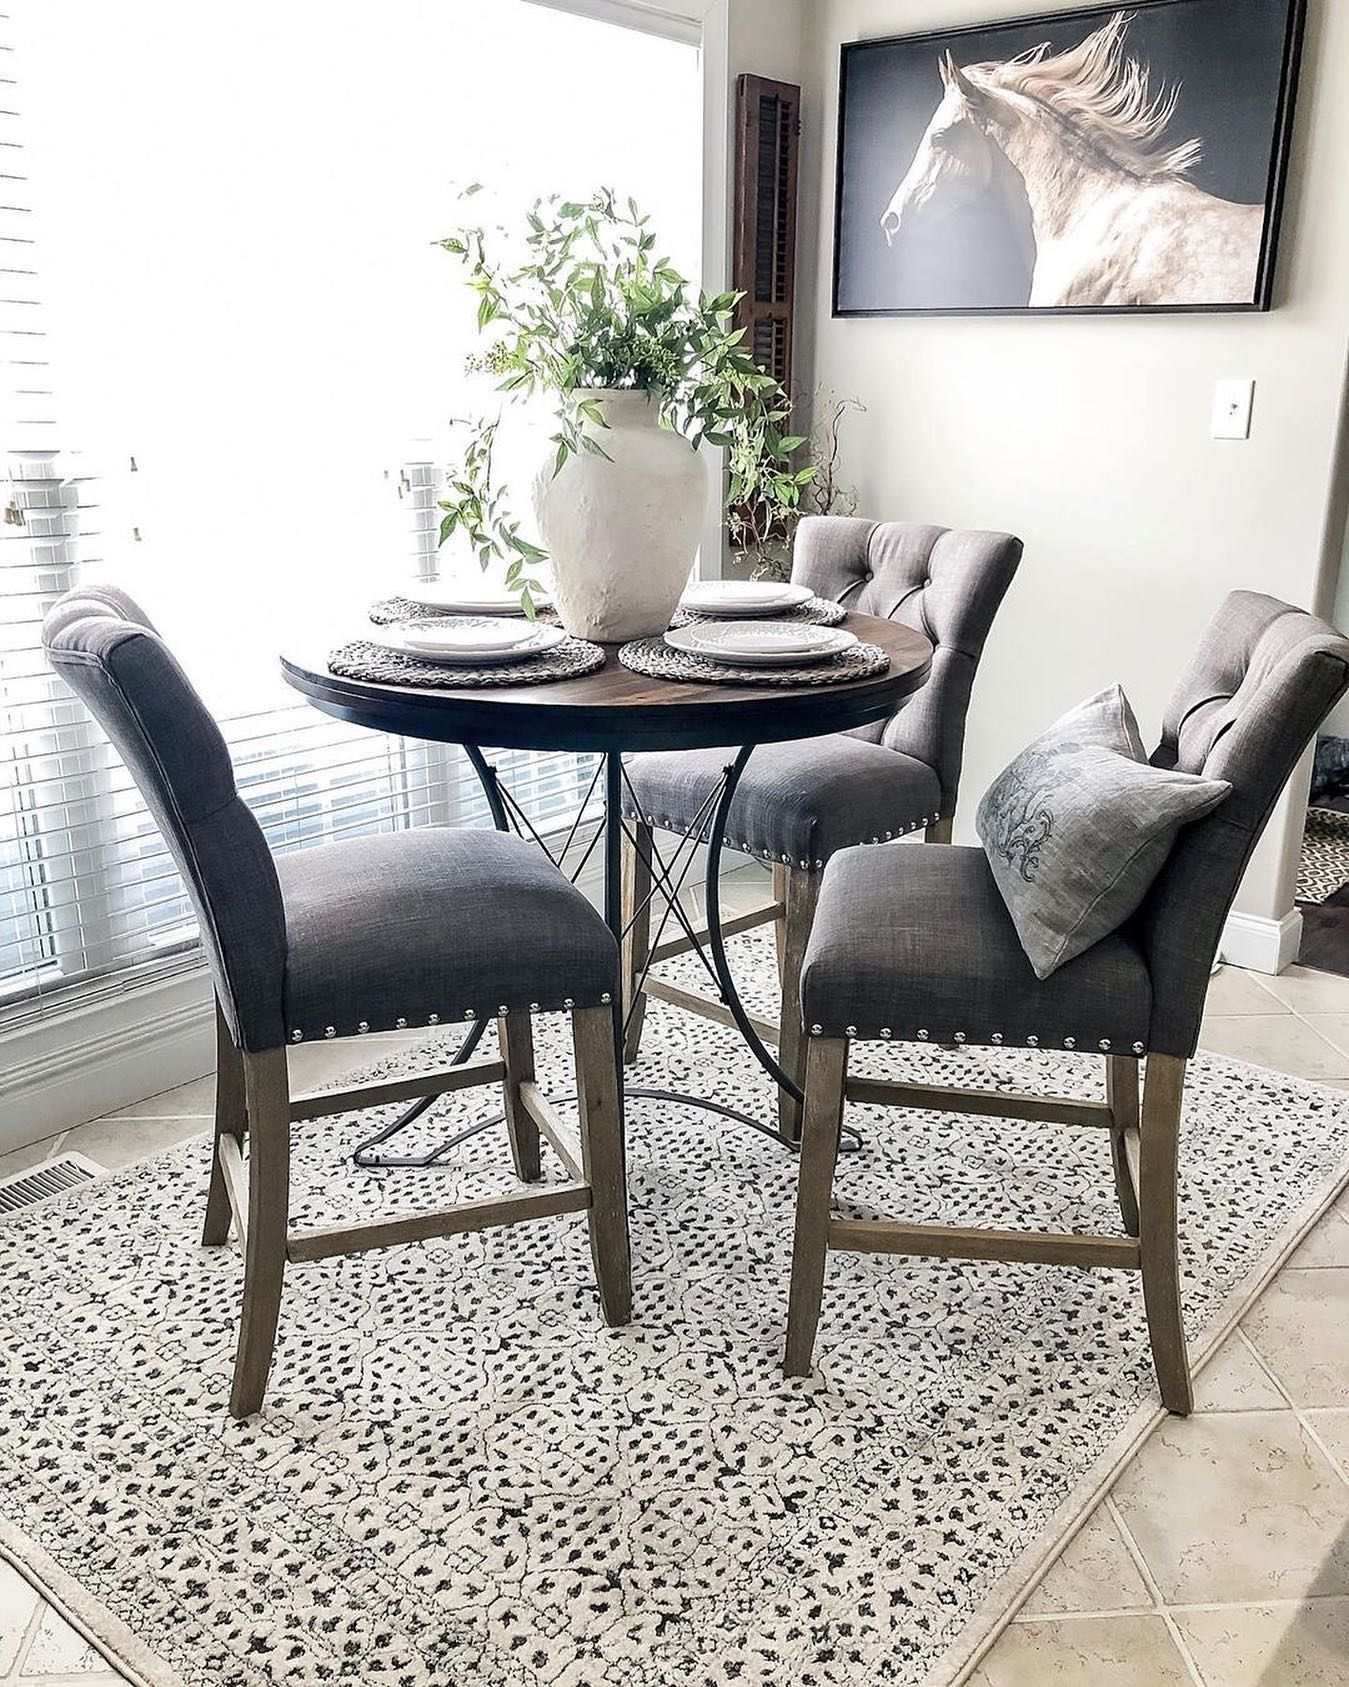 Sattley Area Rug Boutique Rugs Home Deco Furniture Area Rugs Dinner Table Decor